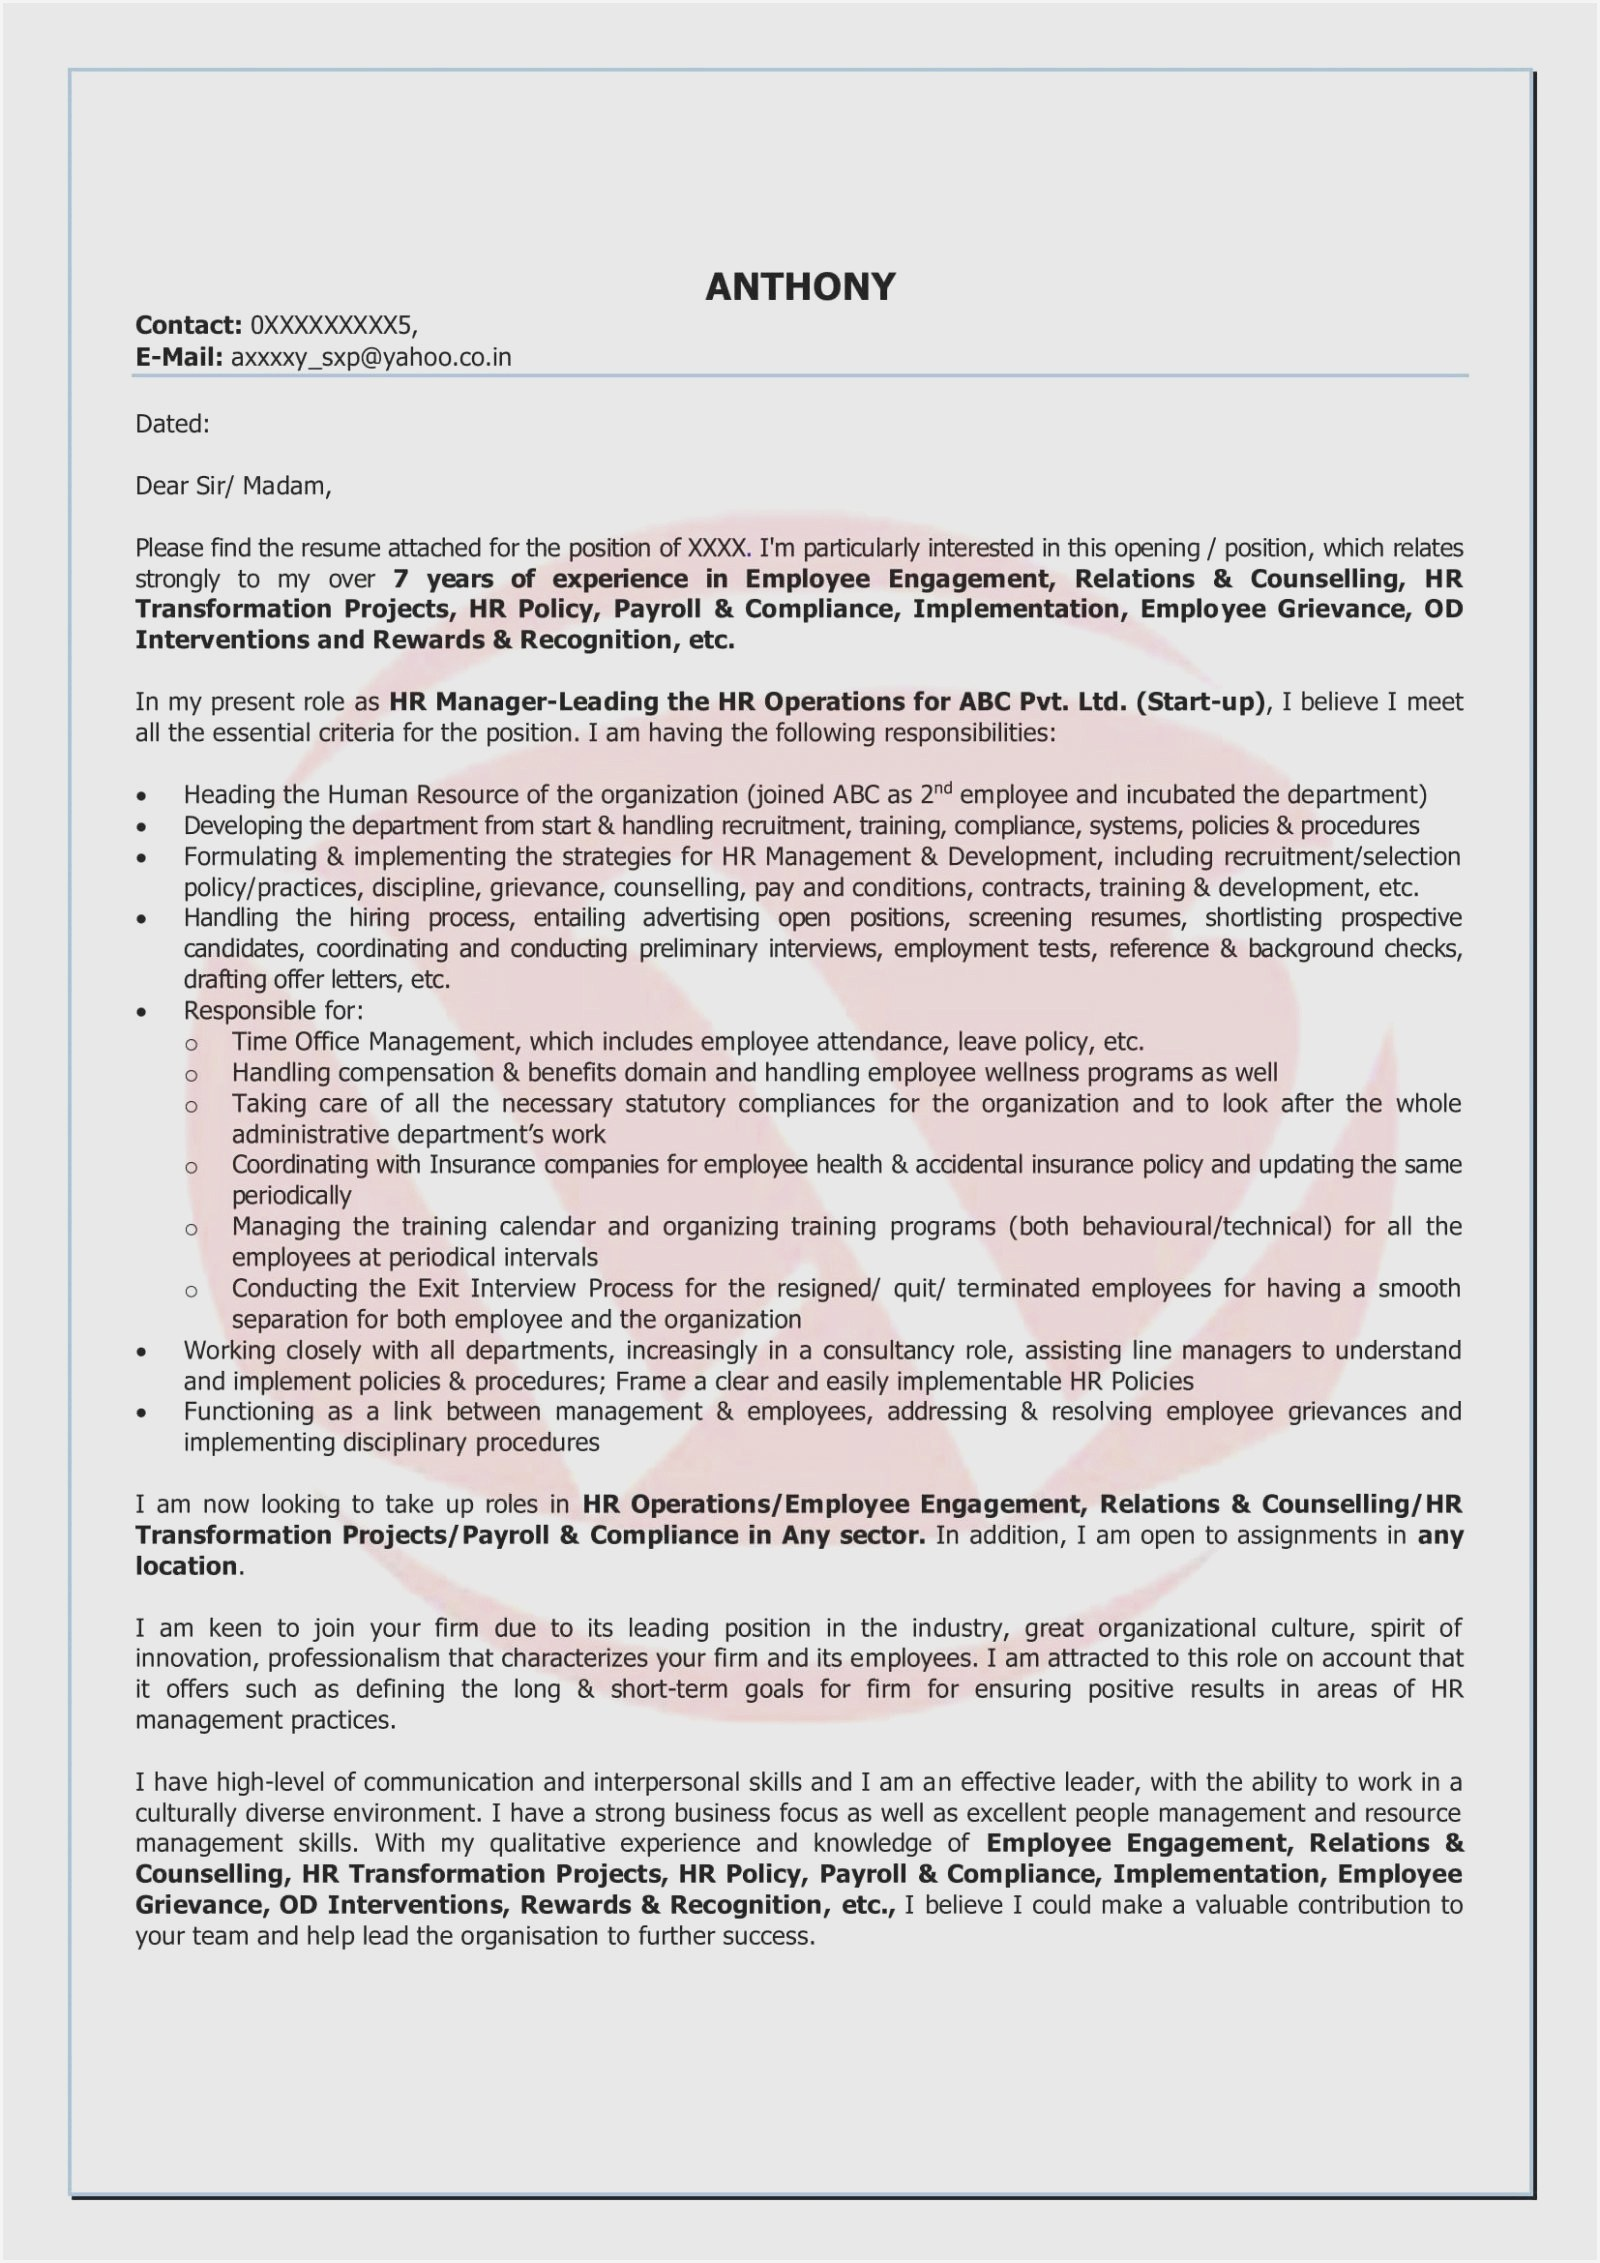 sharepoint administrator resume sample experience on delivery boy advice reddit font pacu Resume Sharepoint Administrator Resume